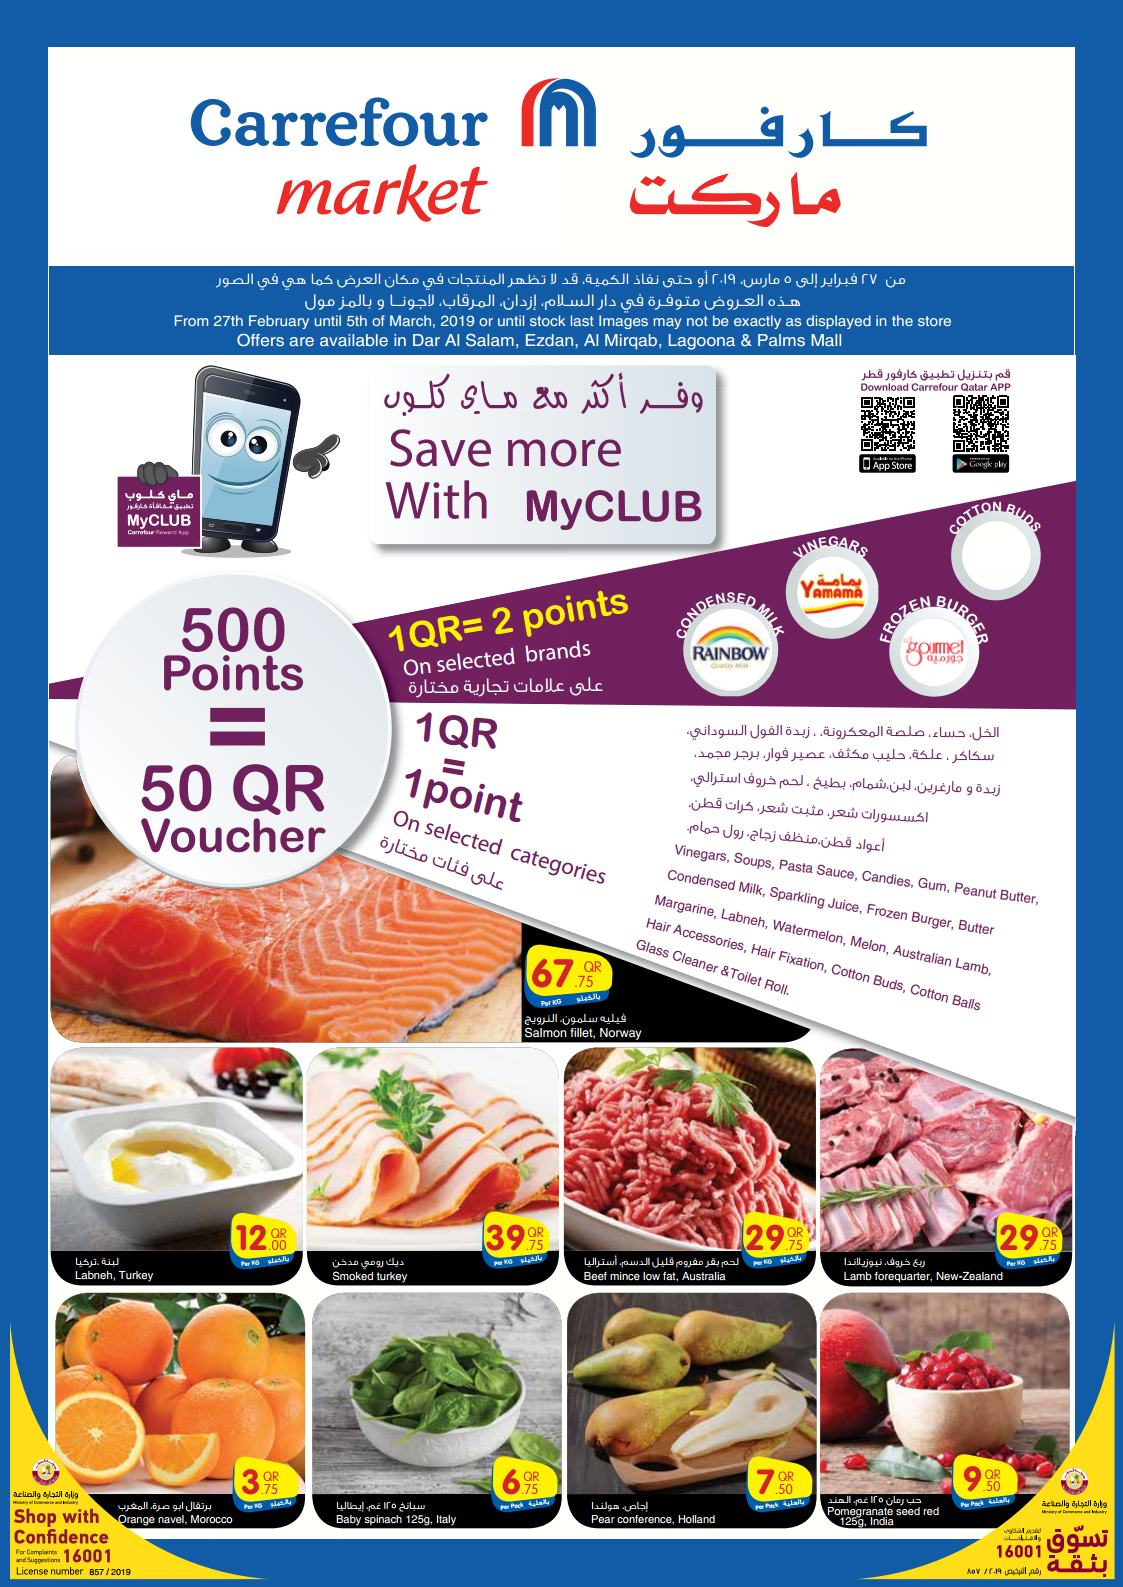 Carrefour Supermarket Offer till 05-03